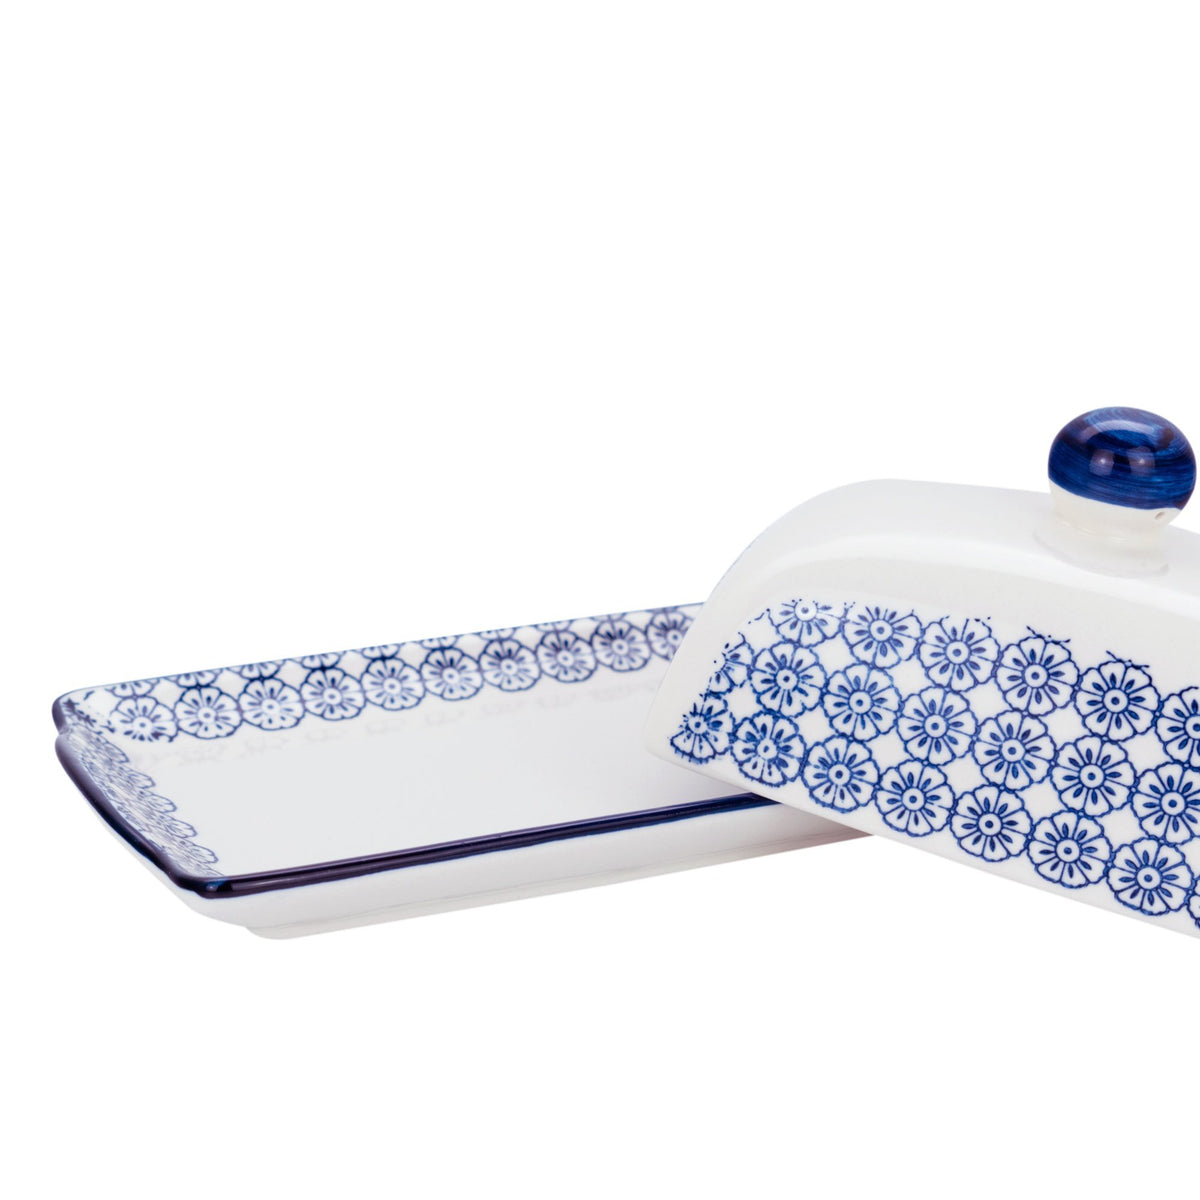 Nicola Spring butter dish with lid